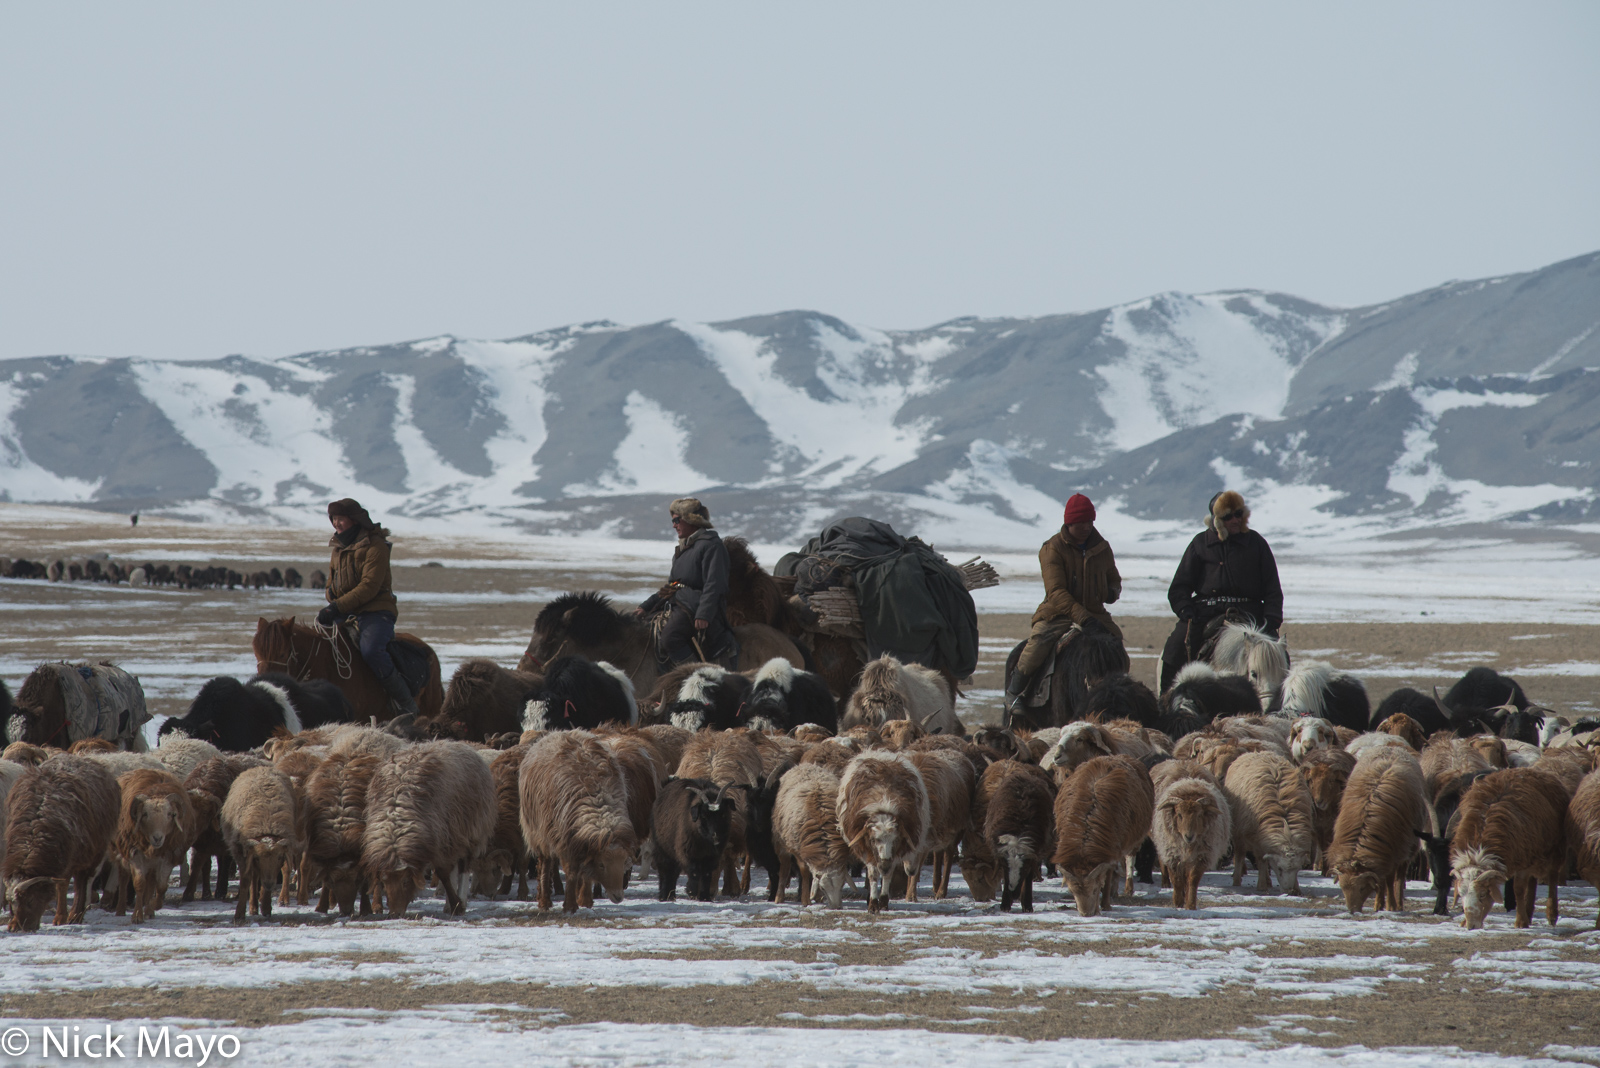 Bayan-Ölgii, Camel, Goat, Herding, Horse, Kazakh, Mongolia, Pack Animal, Sheep, Yak, photo